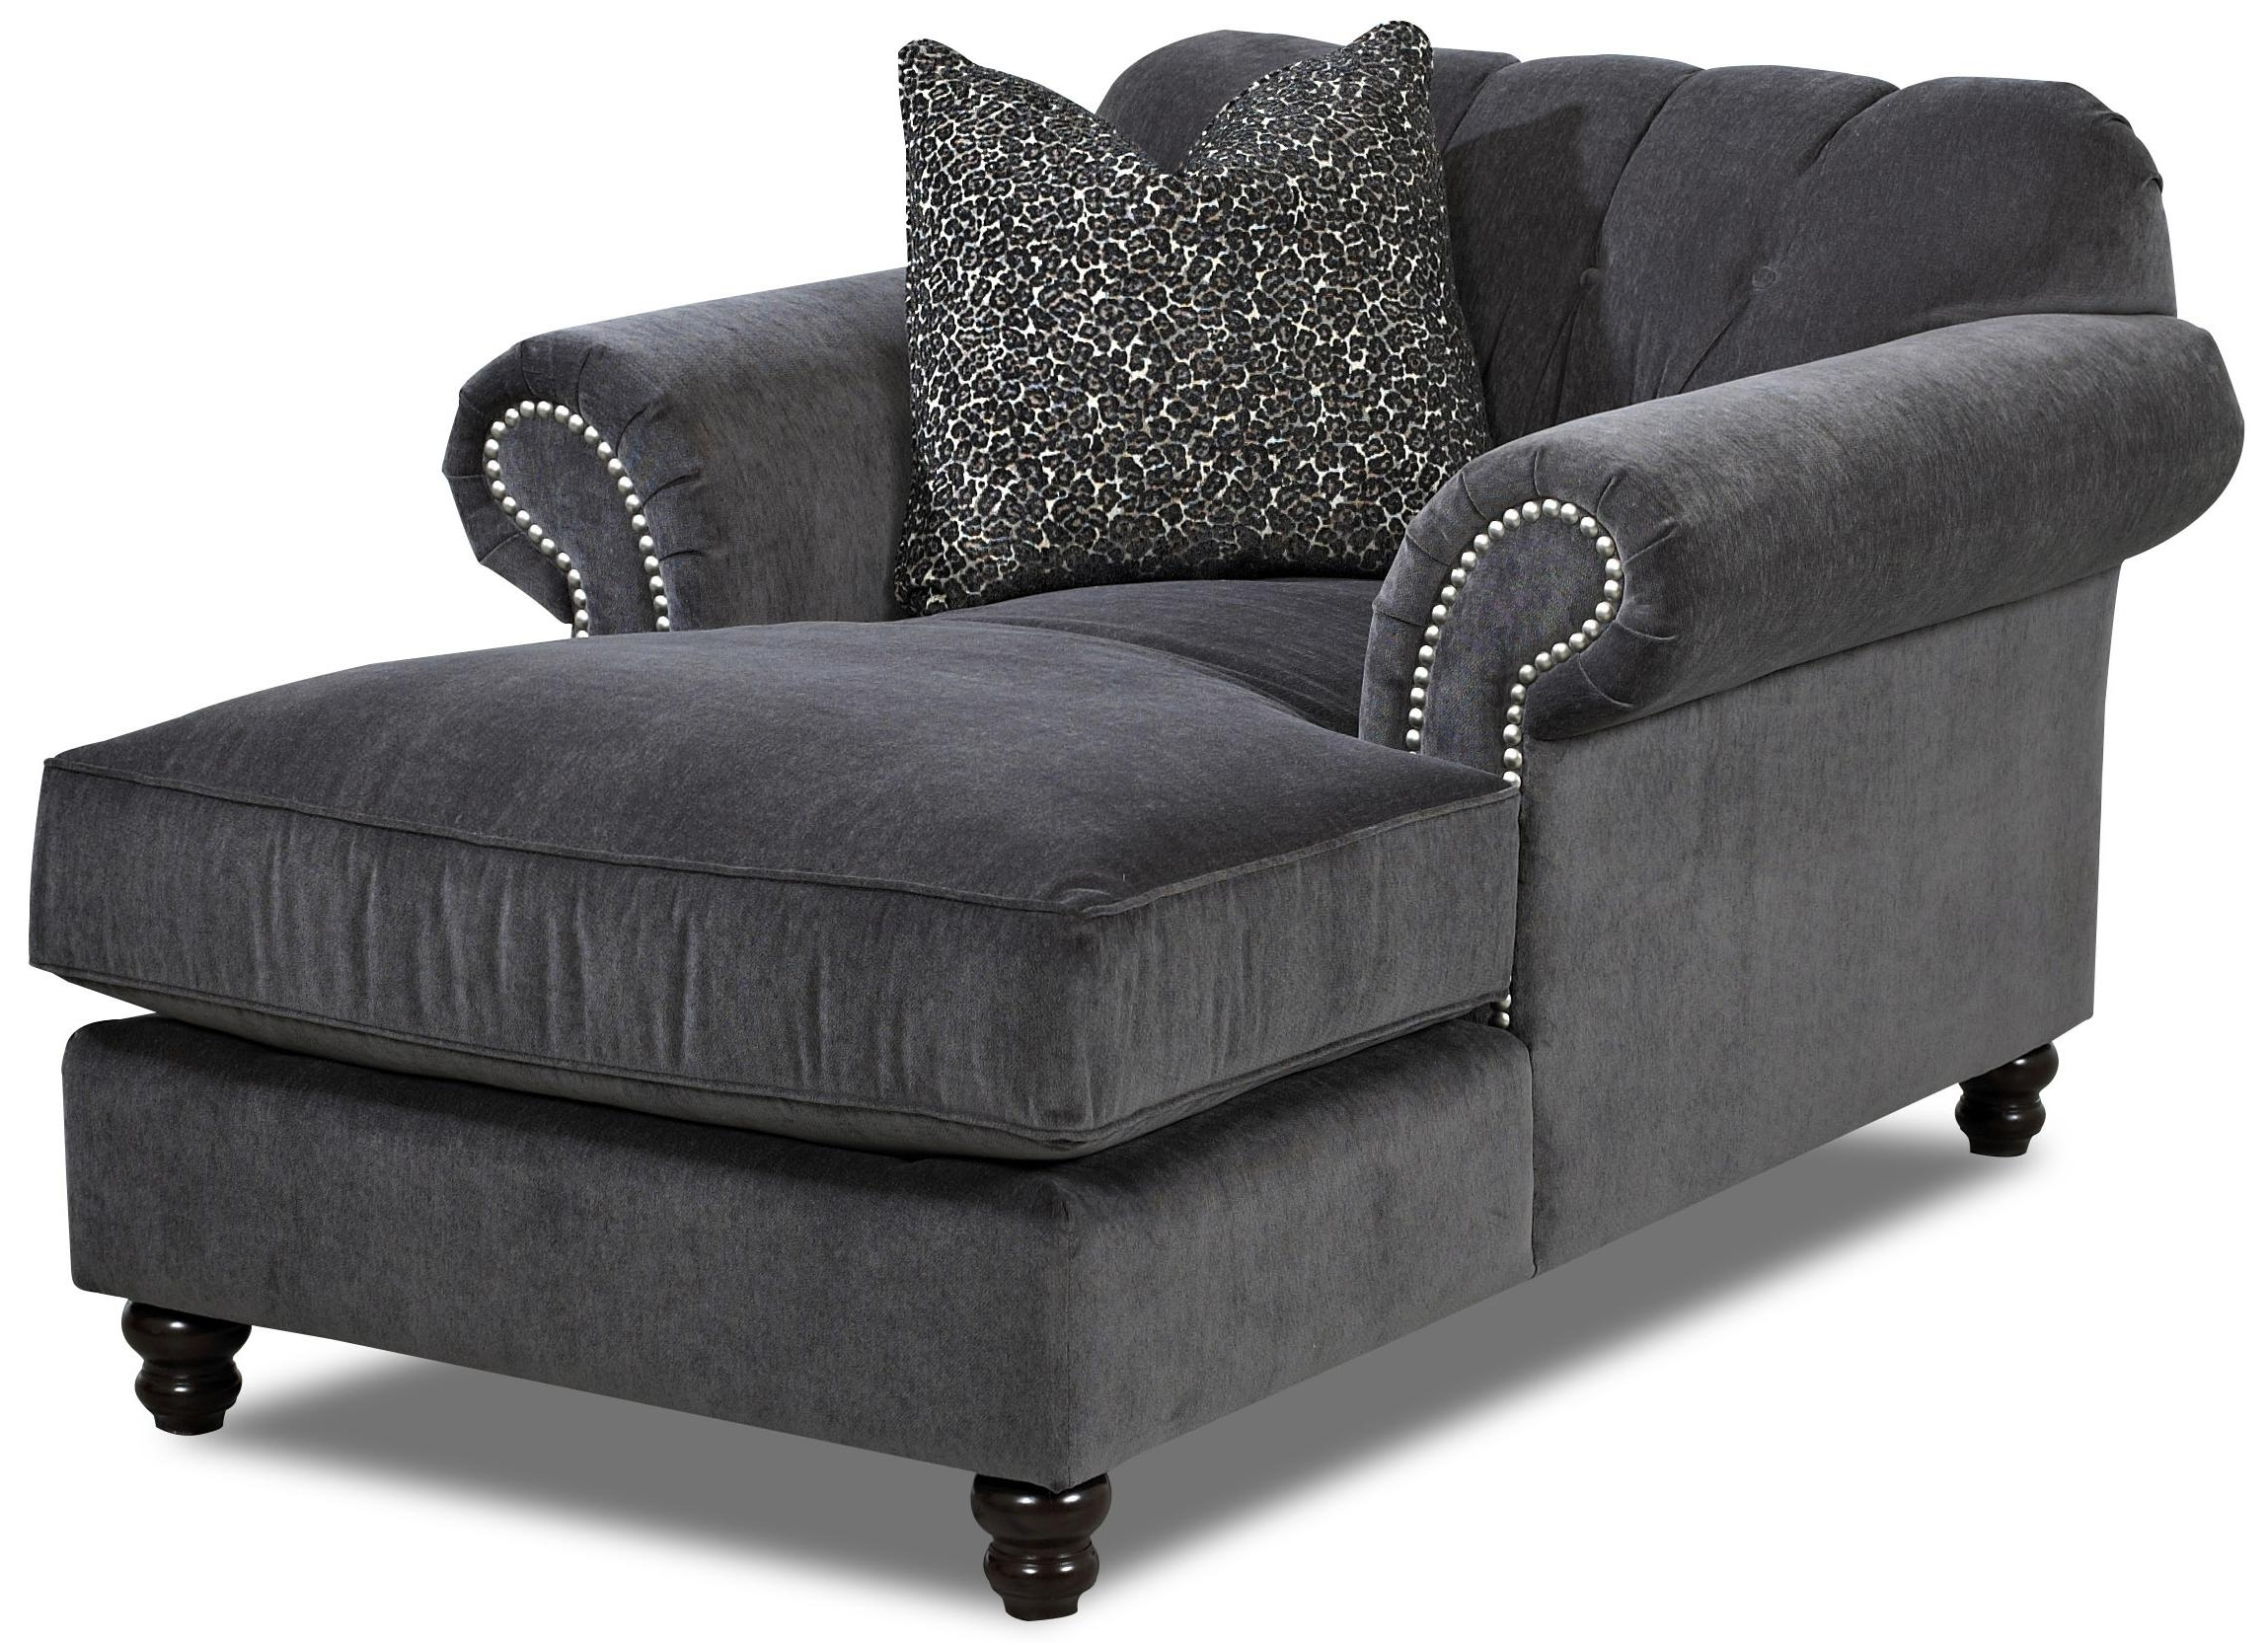 Gray Chaise Lounge Chairs For Best And Newest Lounge Chair : Grey Chaise Lounge Chair Contemporary Chaise' Where (View 6 of 15)